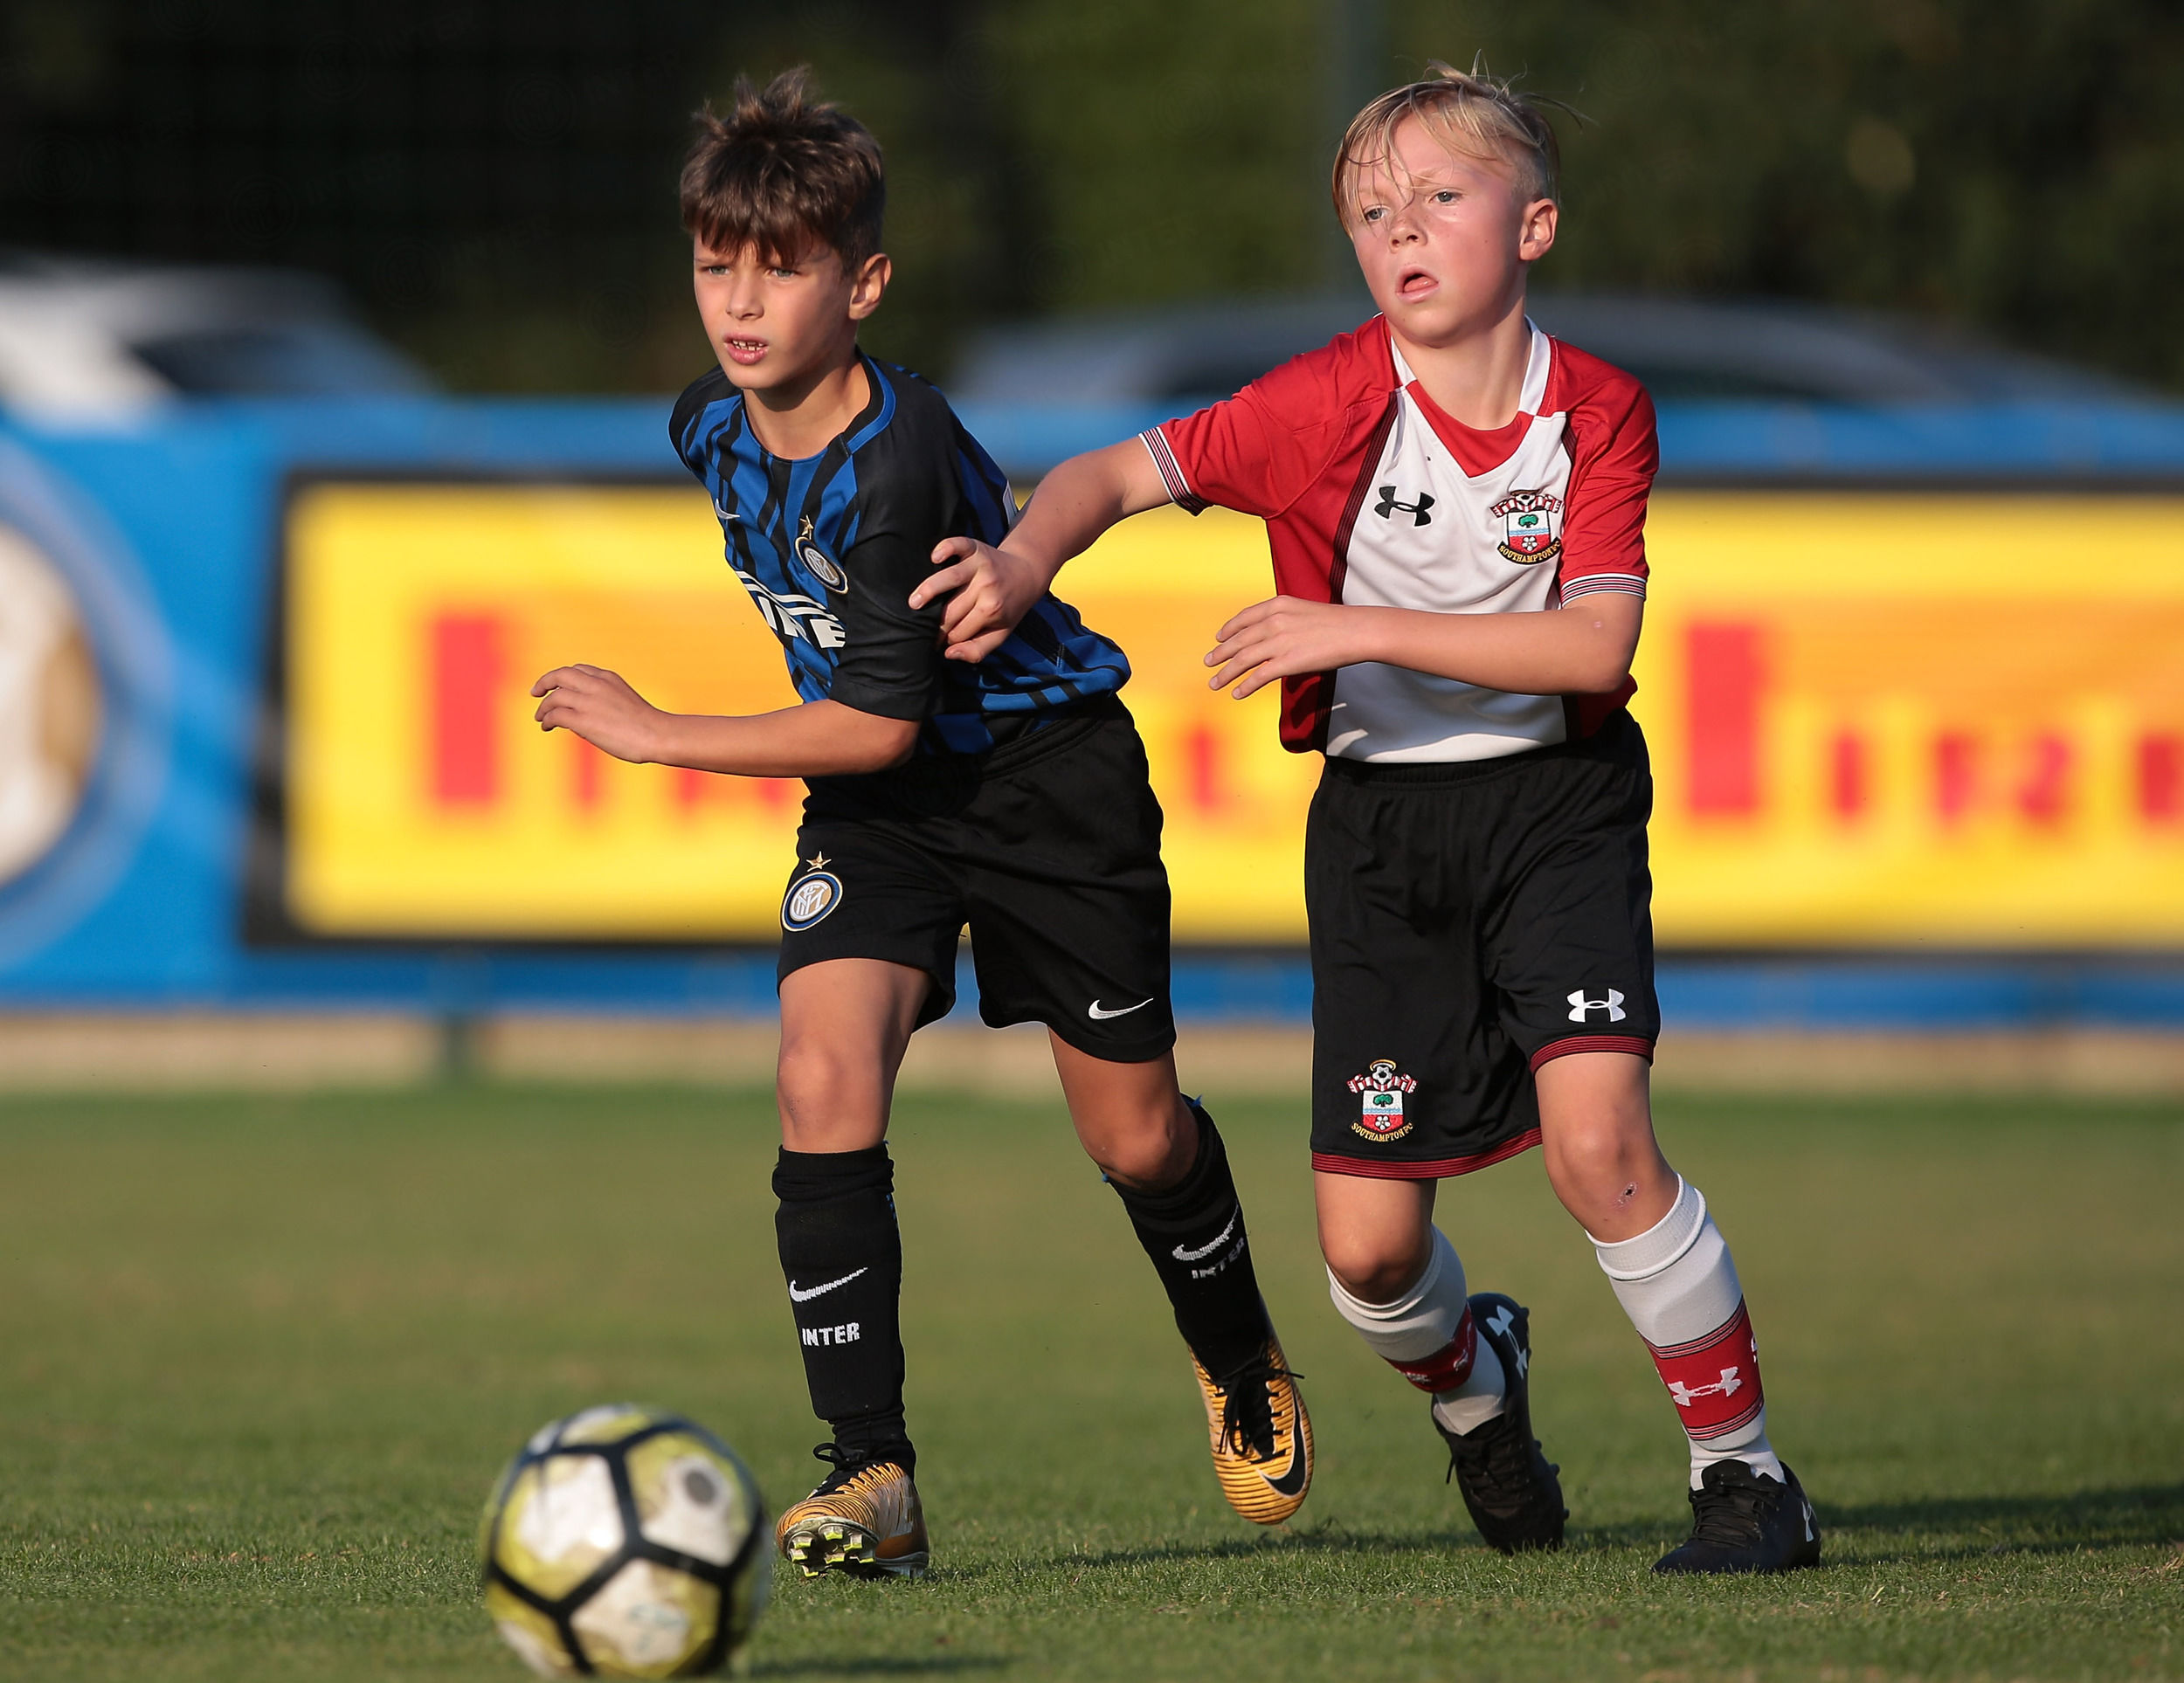 Southampton's youth teams spend three days in Milan